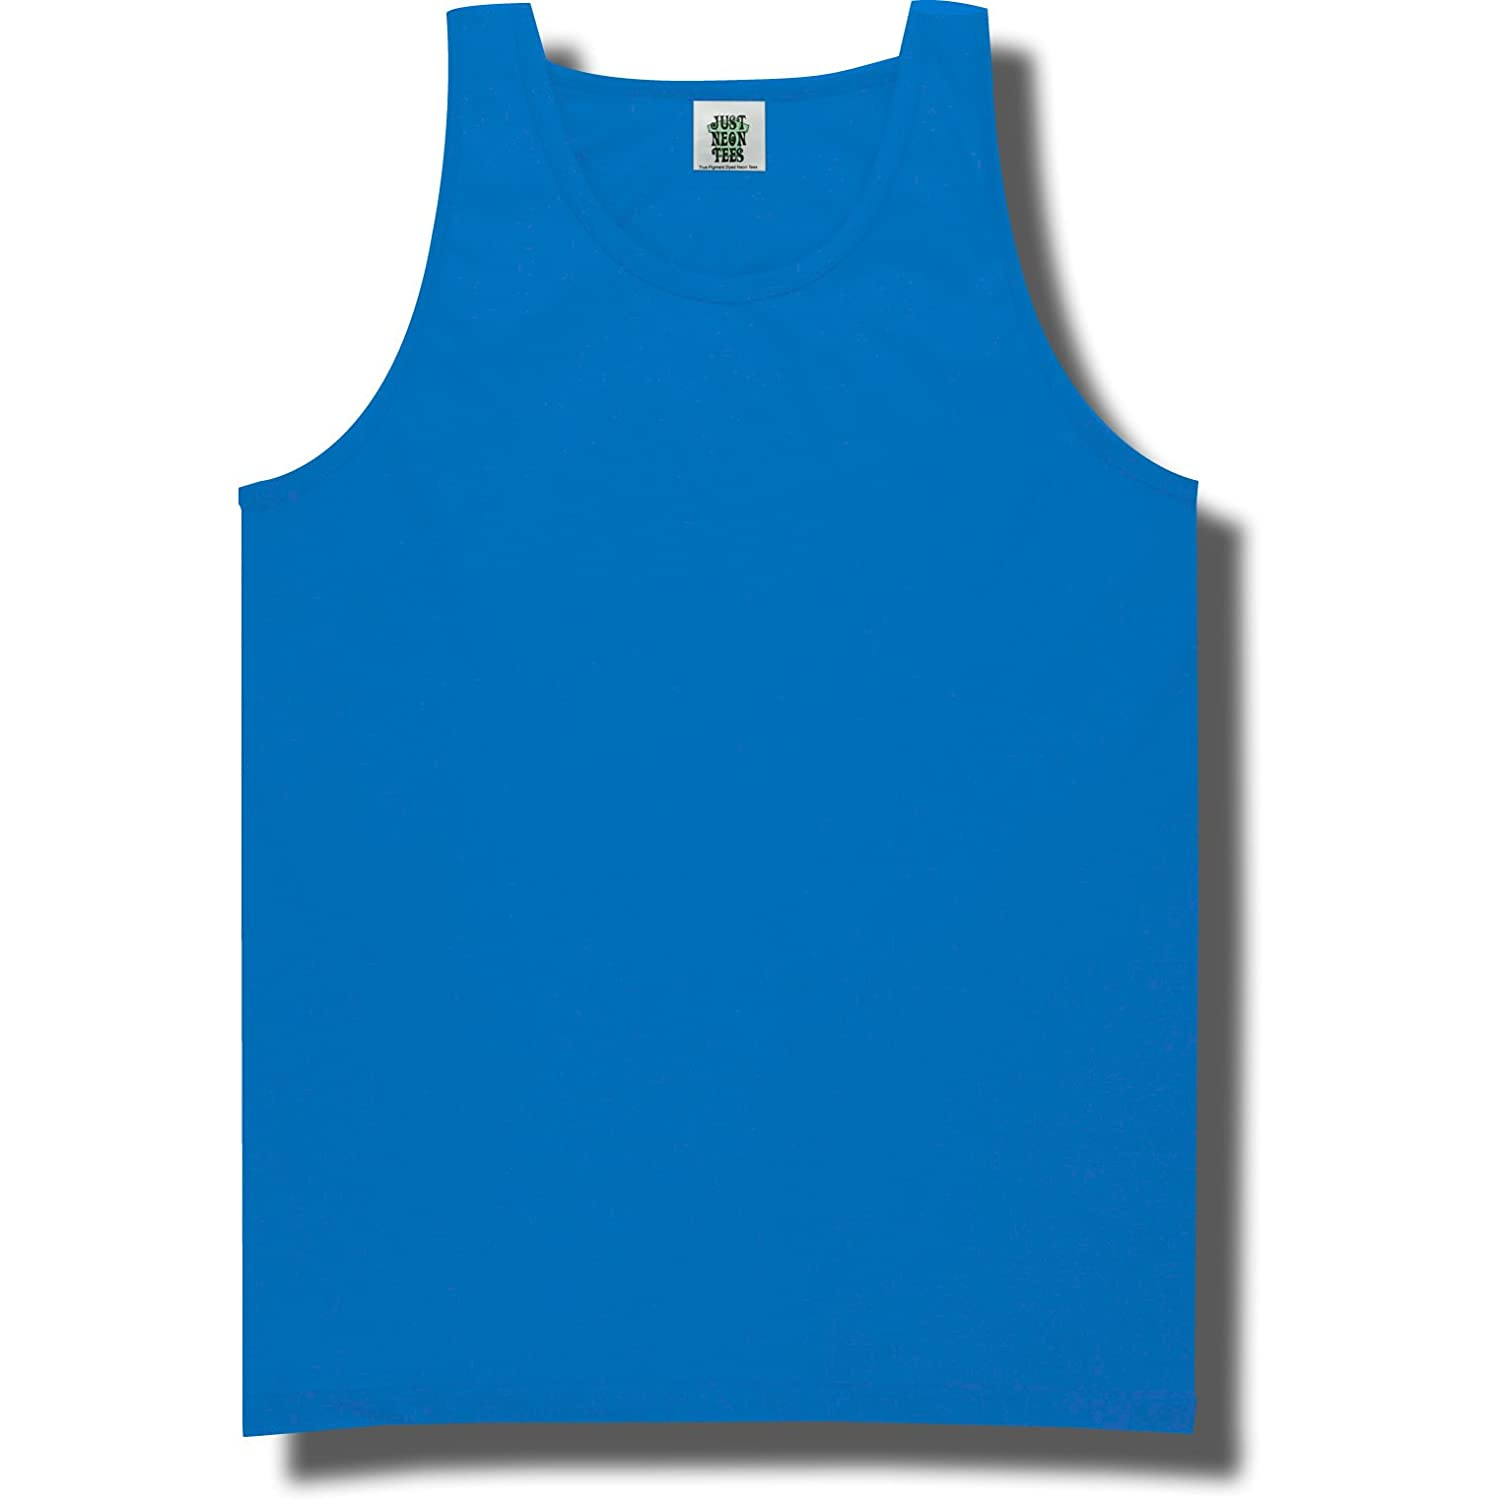 blend comfort styles tank next tops colors at online racerback level design catalog image custom comforter large tri ladies customink com products detail